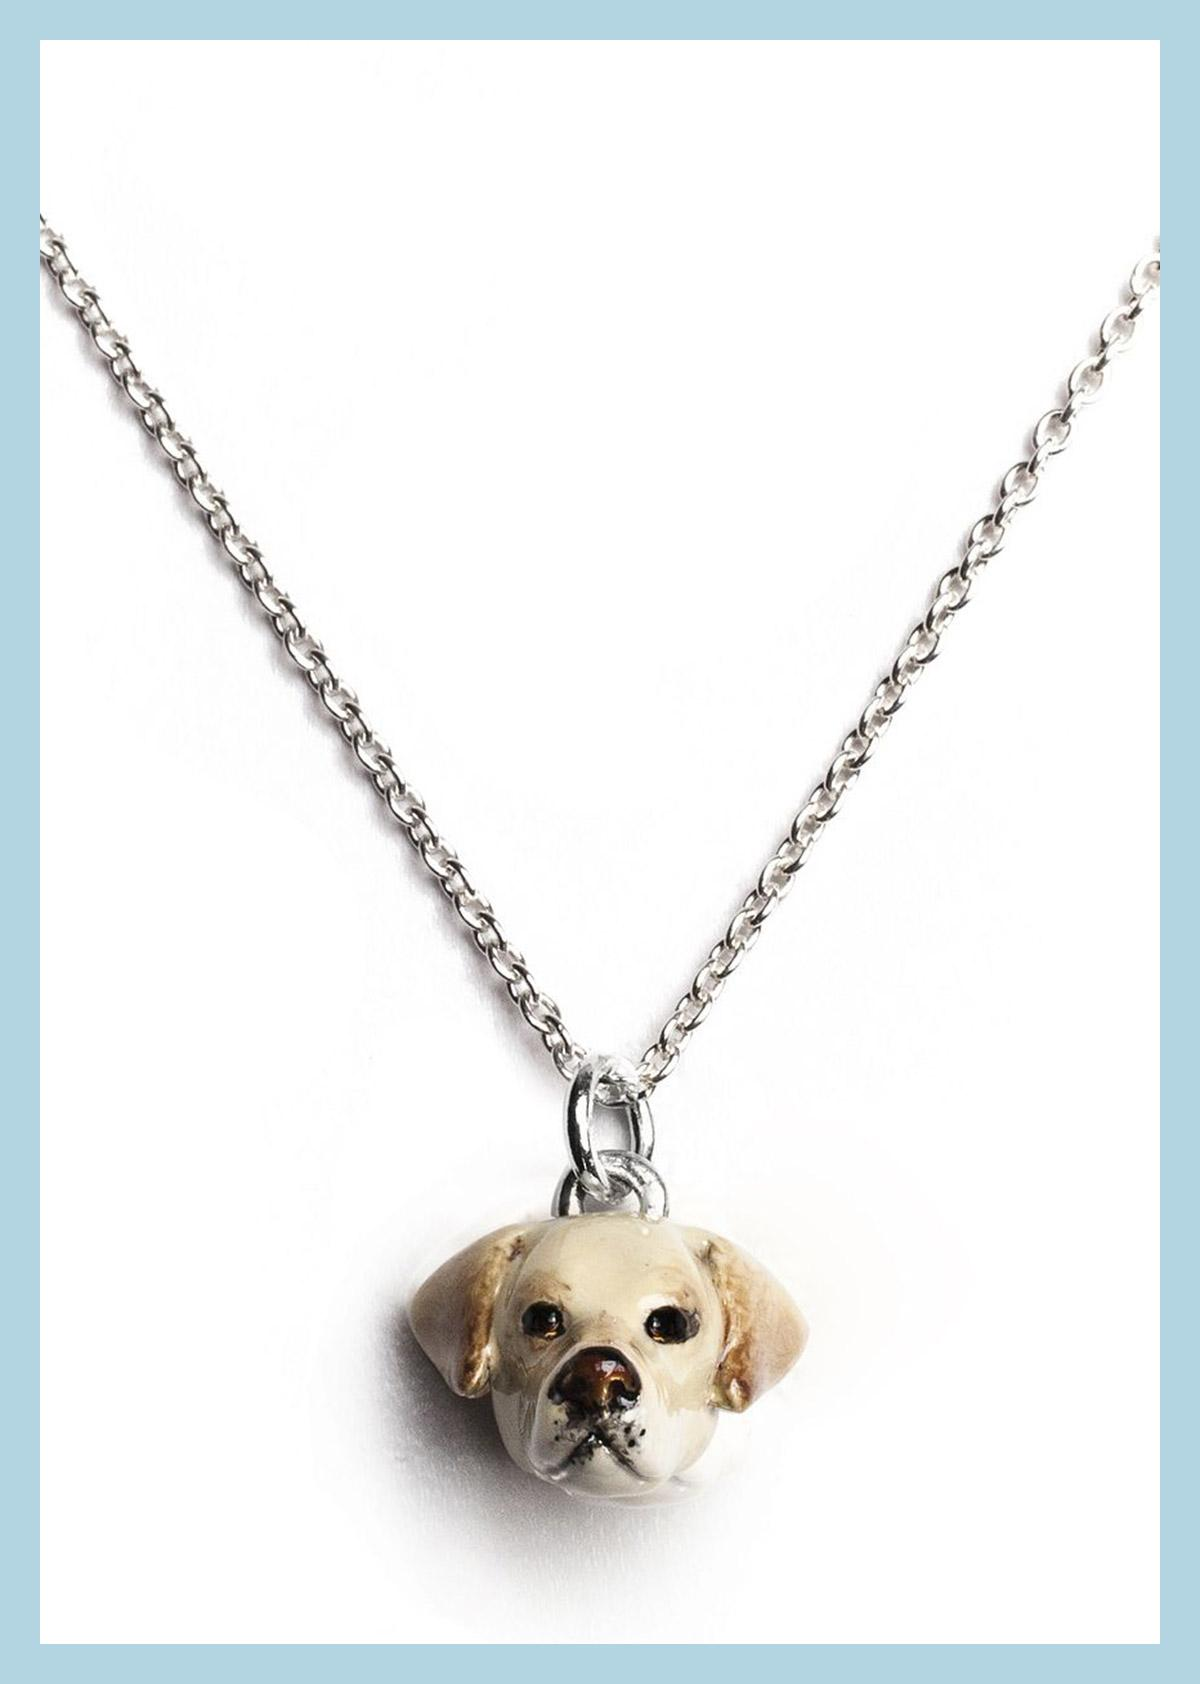 Dog Fever Labrador Retriever Pendant